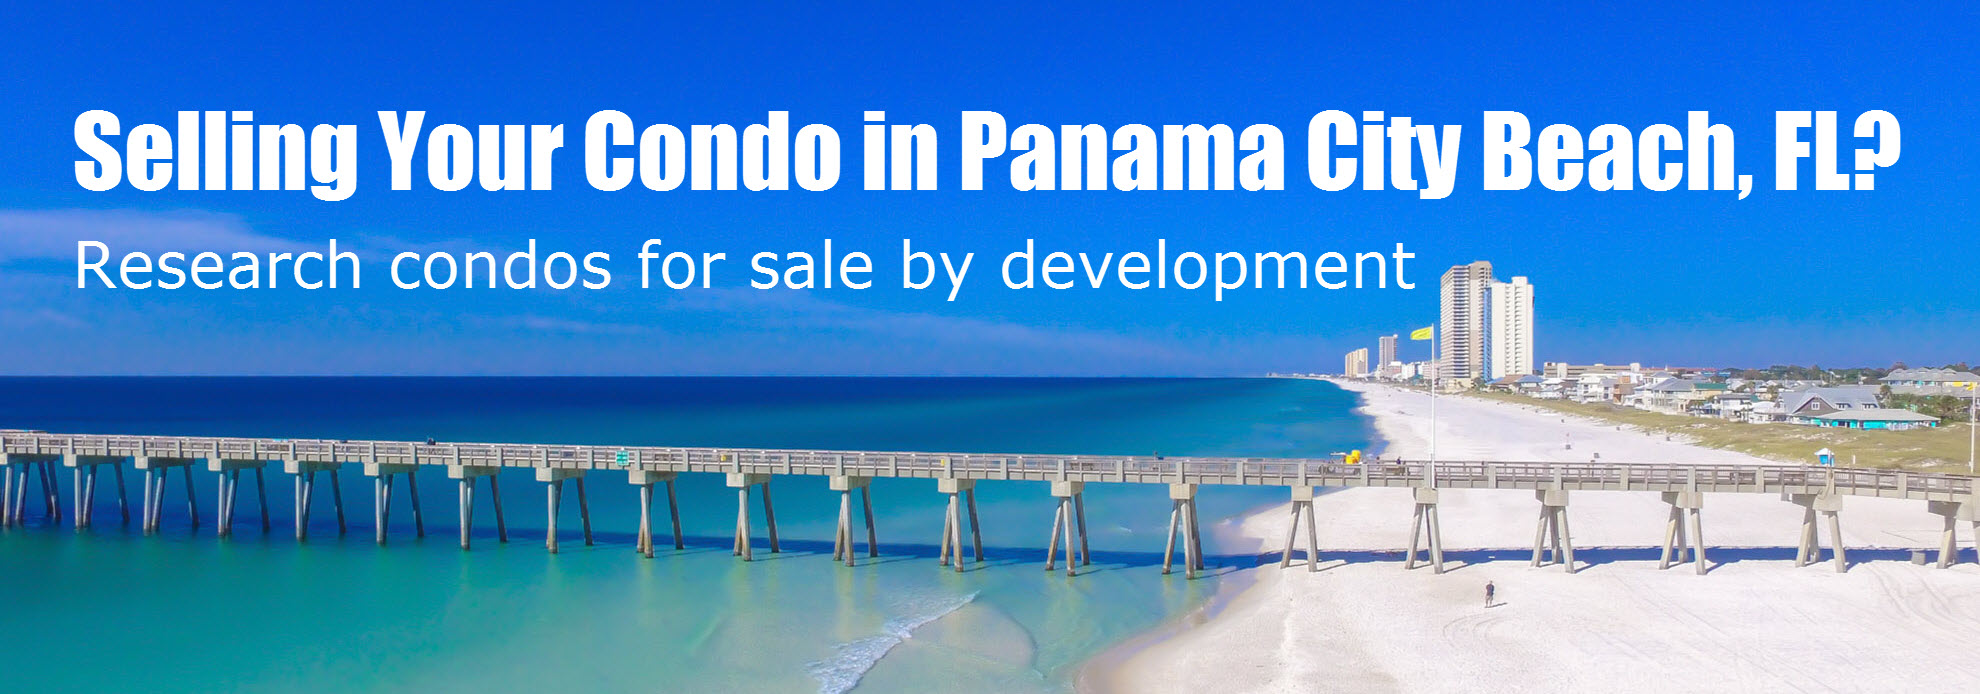 Selling your condo in Panama City Beach